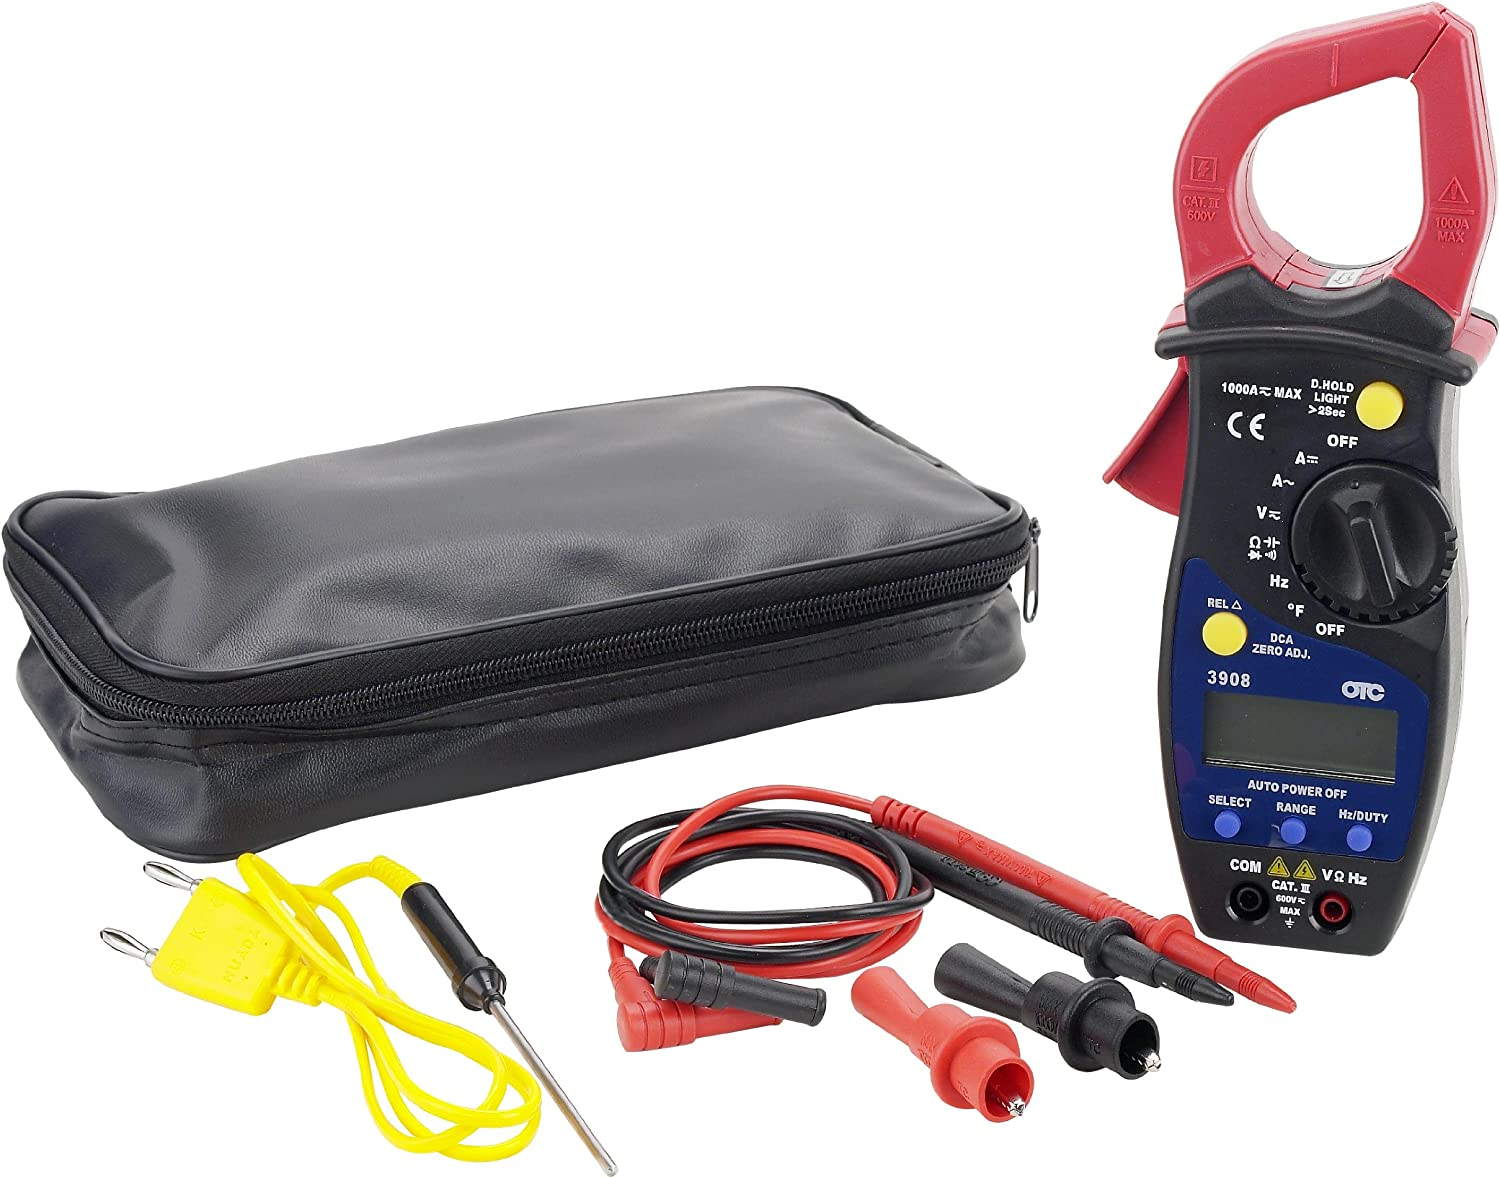 3908 Otc Clamp Meter Kit Digital Jaw 1-17//64 In